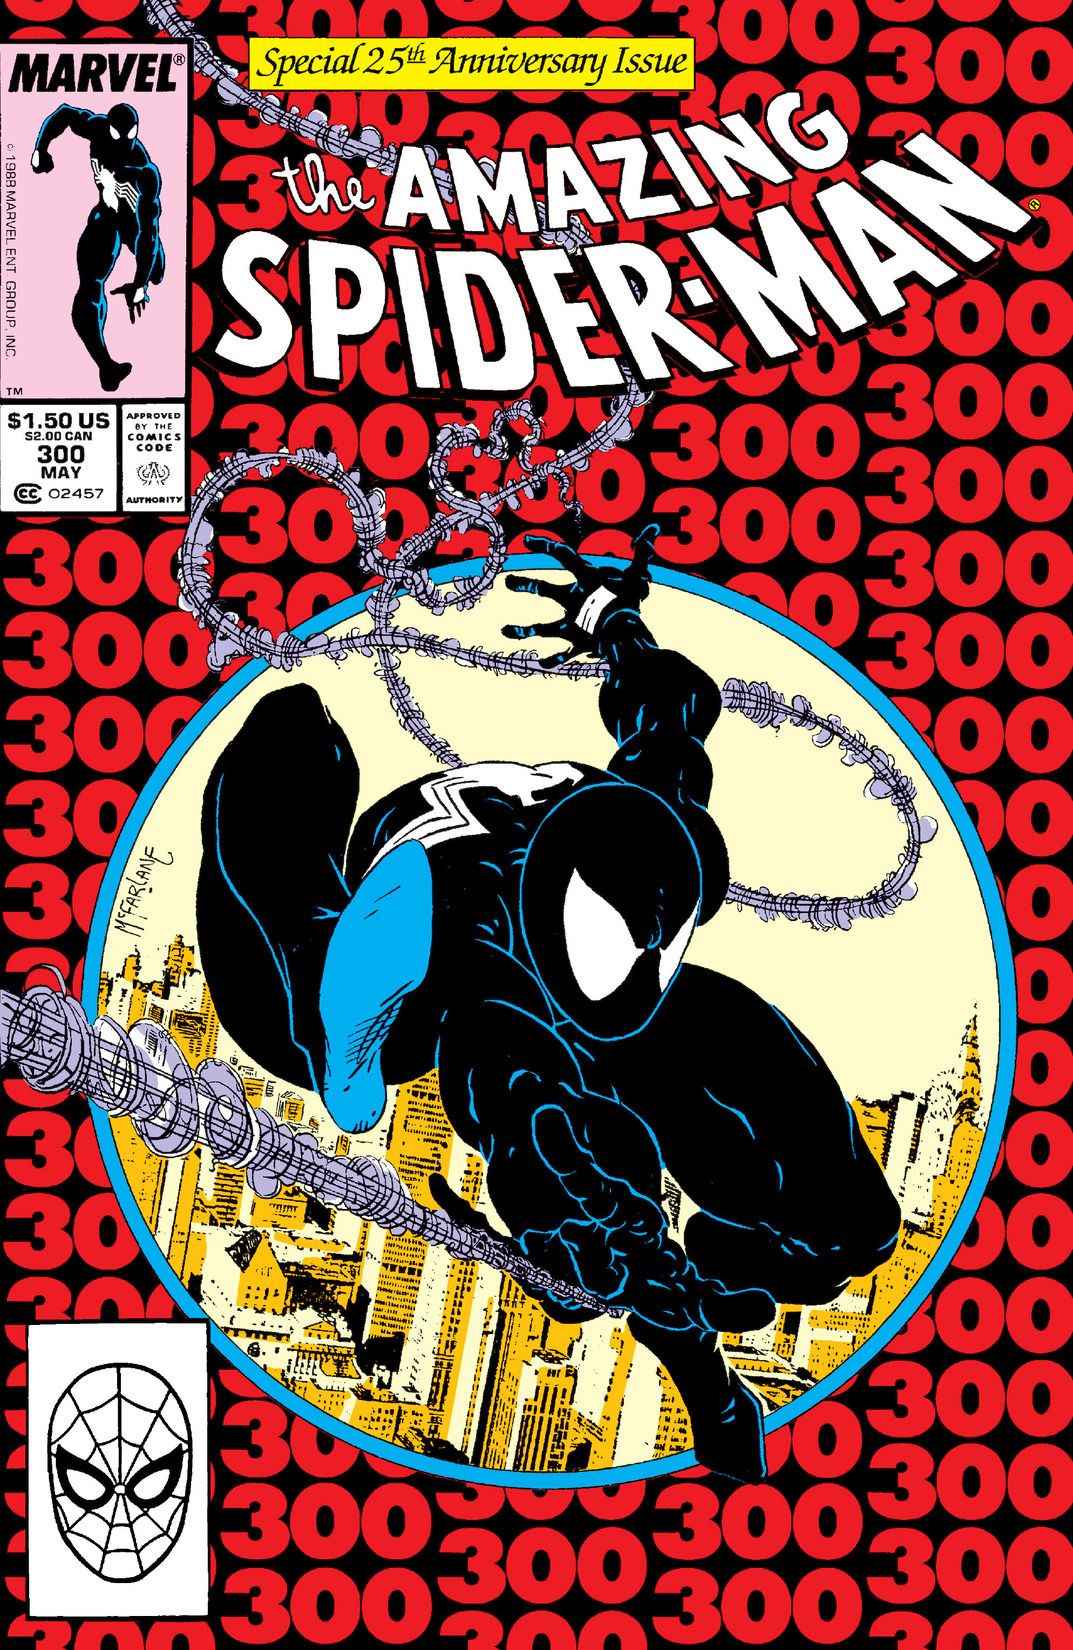 'Amazing Spider-Man' (1988) #300, marks the first appearance of Venom in Marvel continuity.